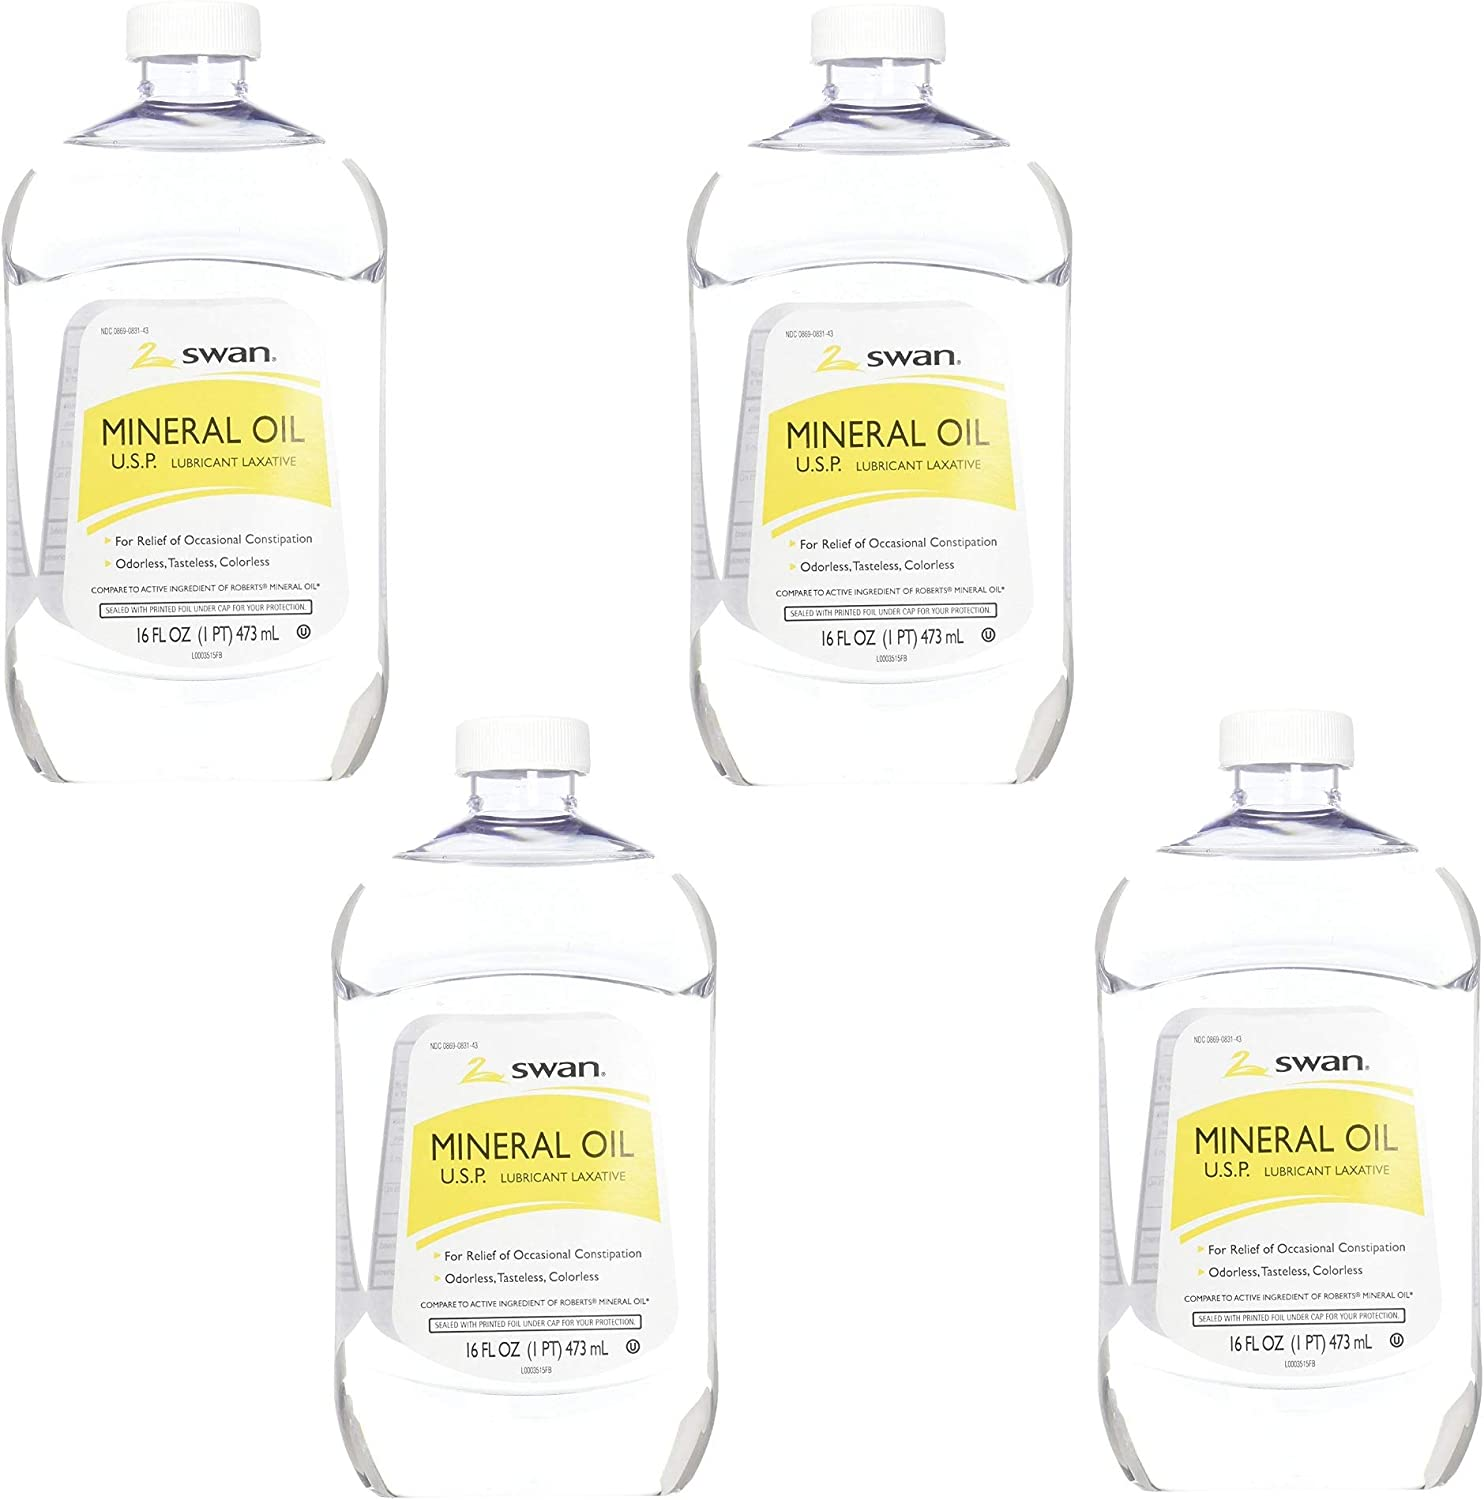 Swan Mineral Oil 16 oz, 4 Pack